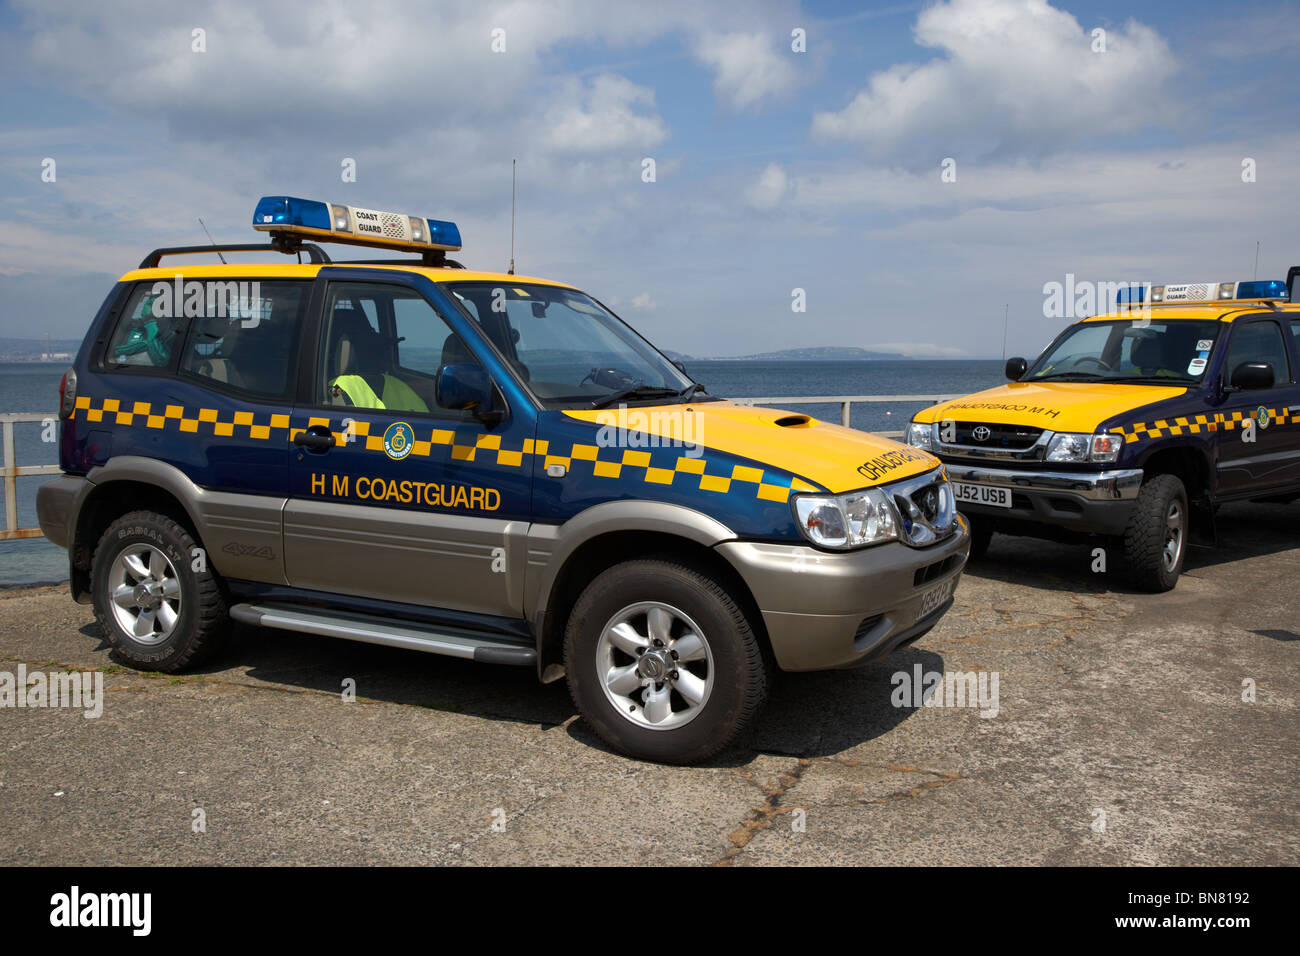 two HM Coastguard search and rescue 4x4 vehicles parked on a pier in the uk - Stock Image